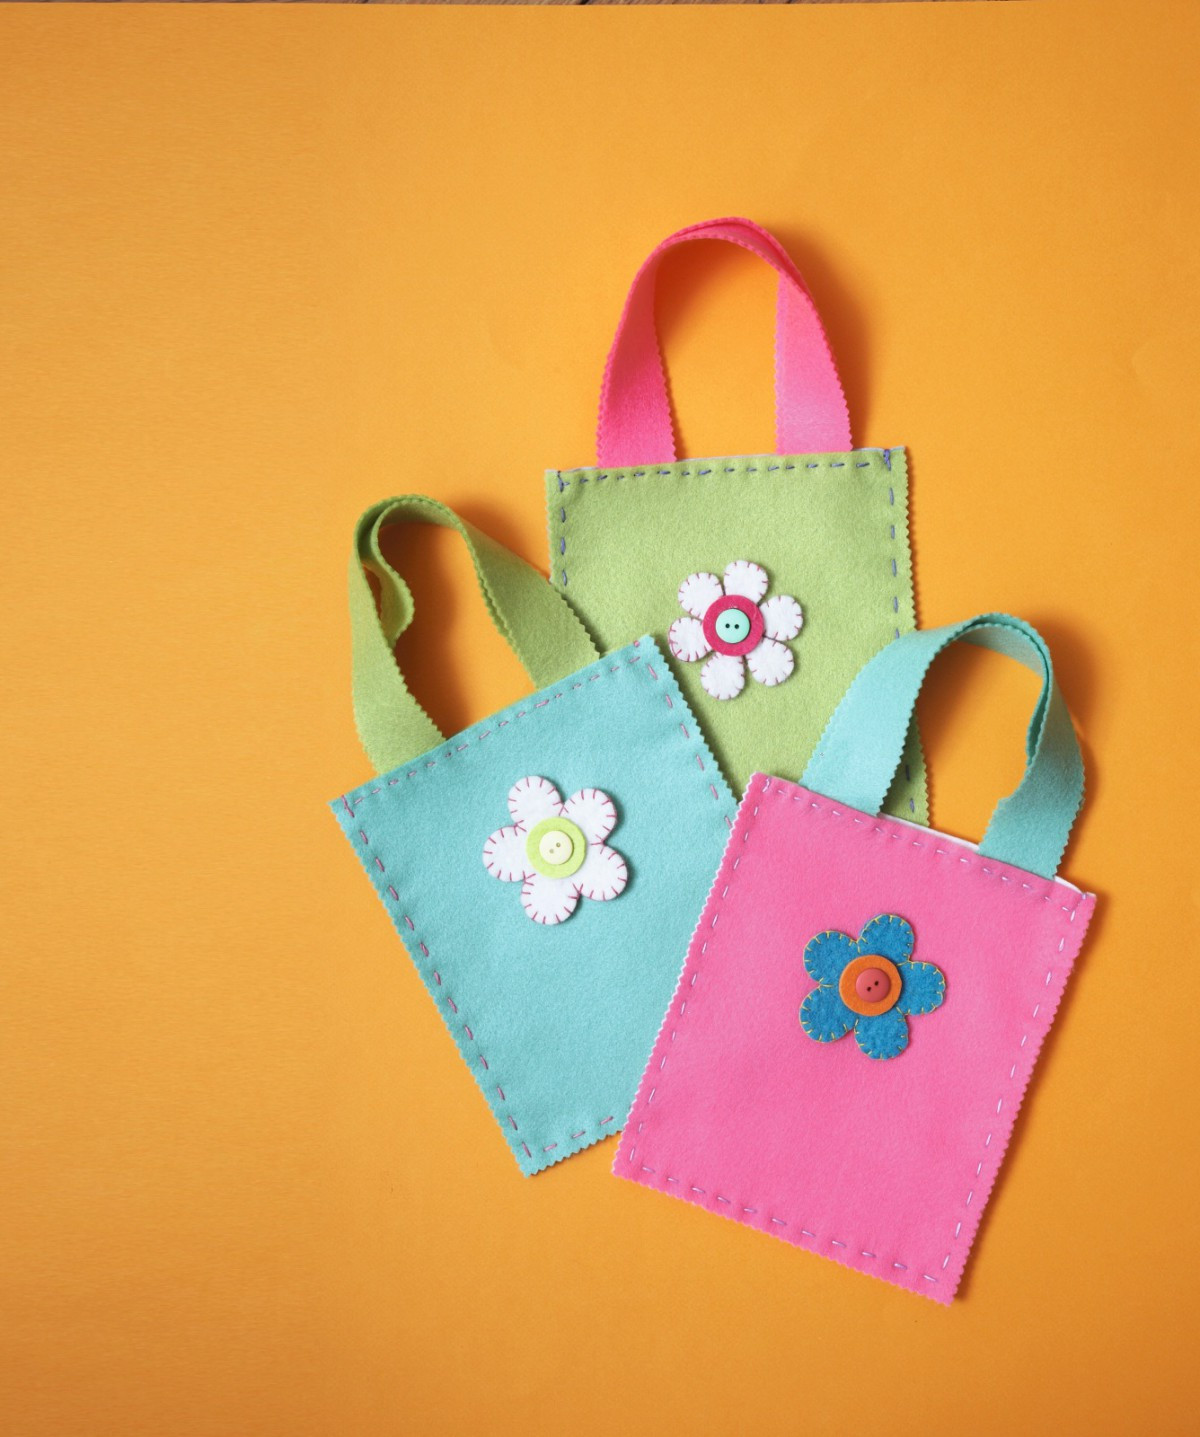 Best ideas about Craft Ideas Kids . Save or Pin 9 Easy Easter Craft Ideas for Kids Hobbycraft Blog Now.